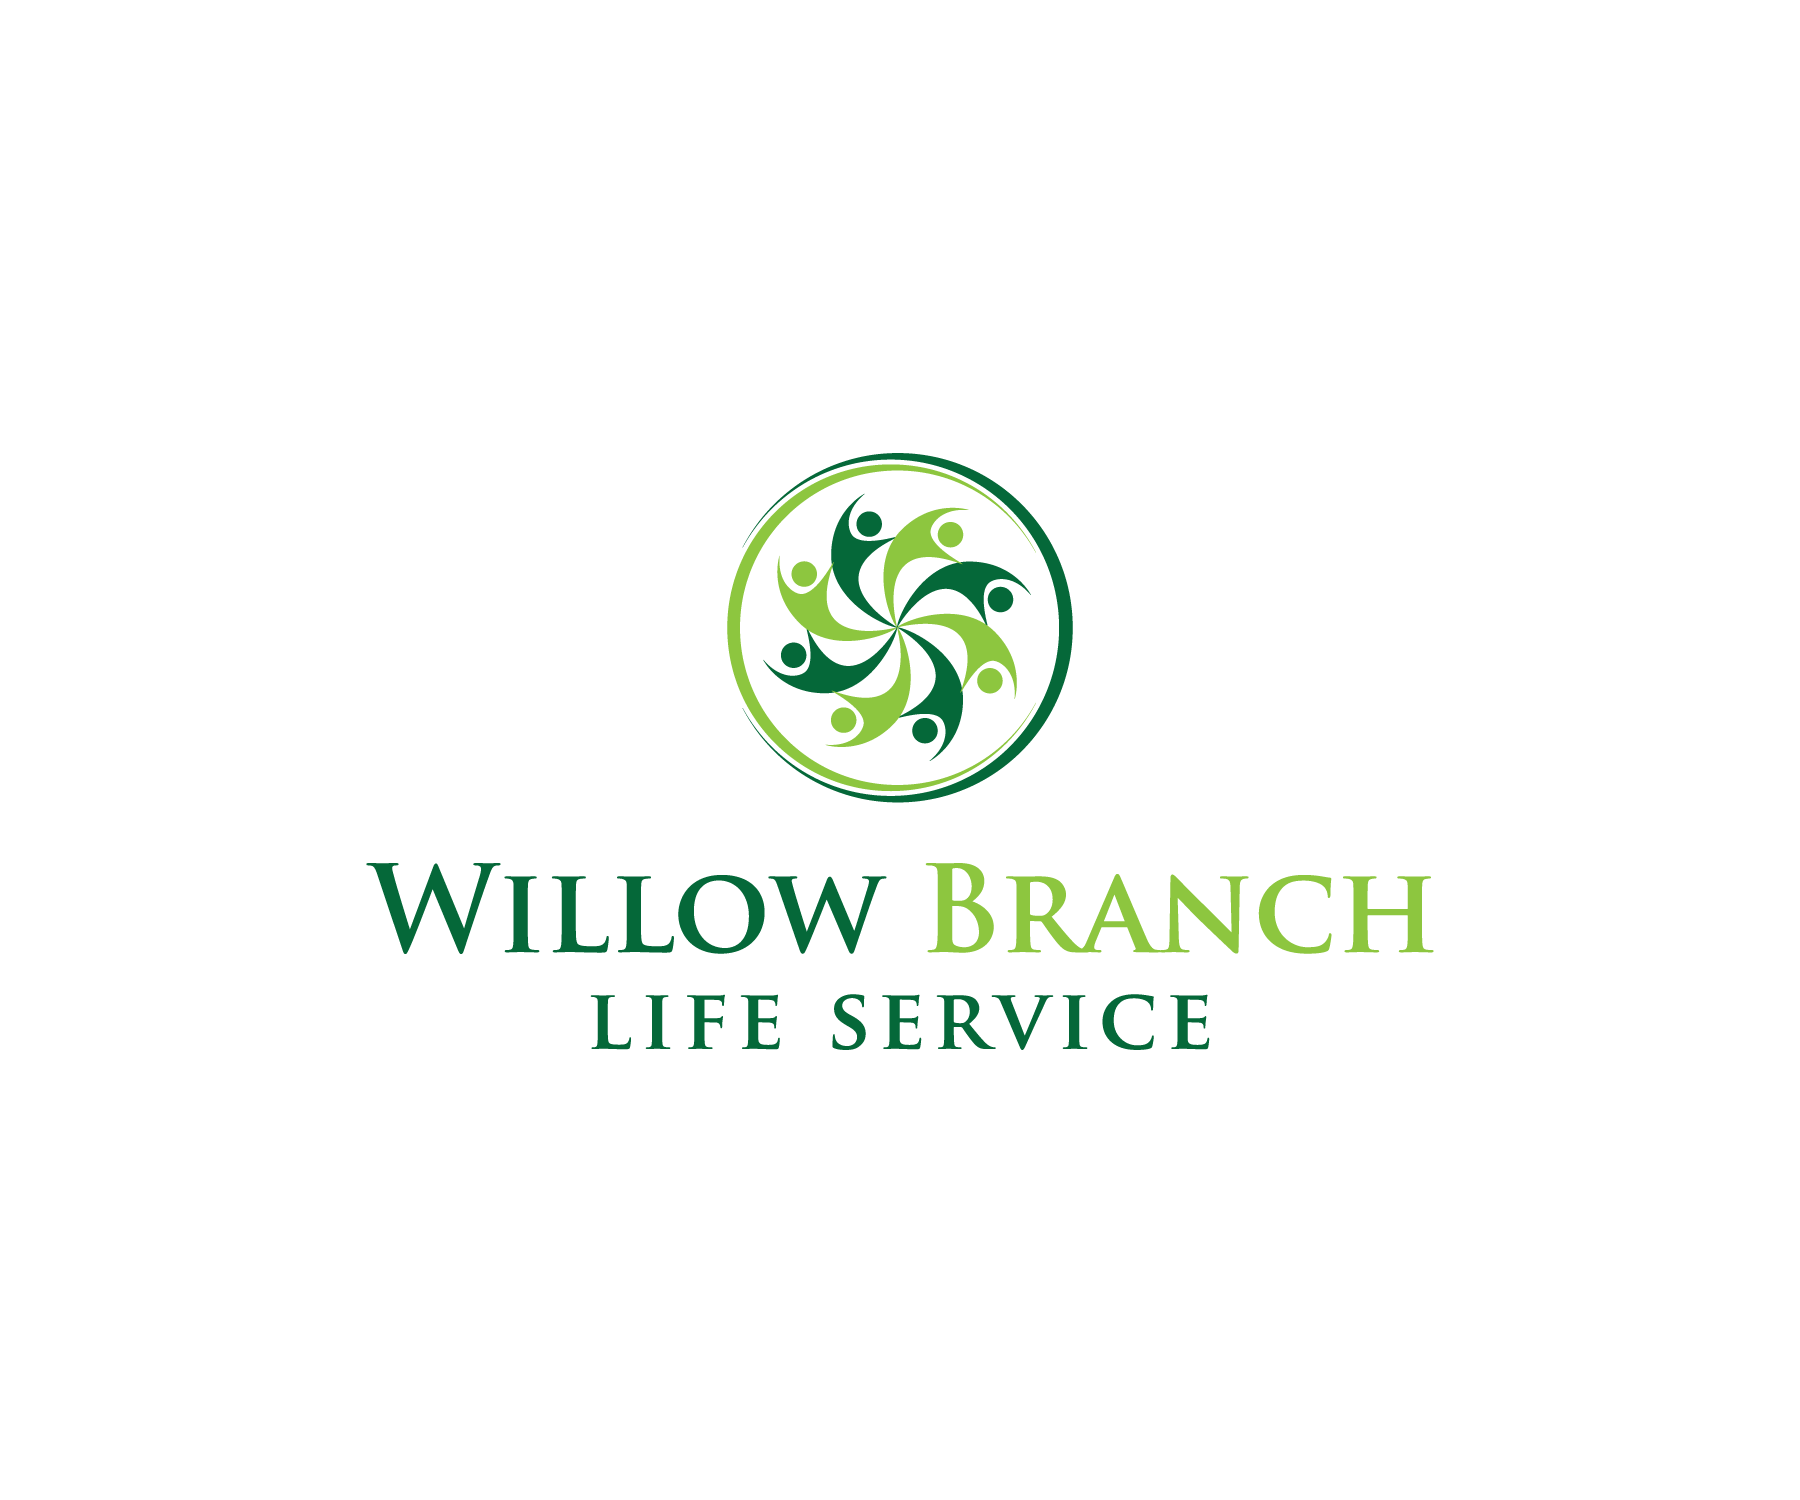 Logo Design by Nazmul Islam - Entry No. 358 in the Logo Design Contest Artistic Logo Design for Willow Branch Life Service.